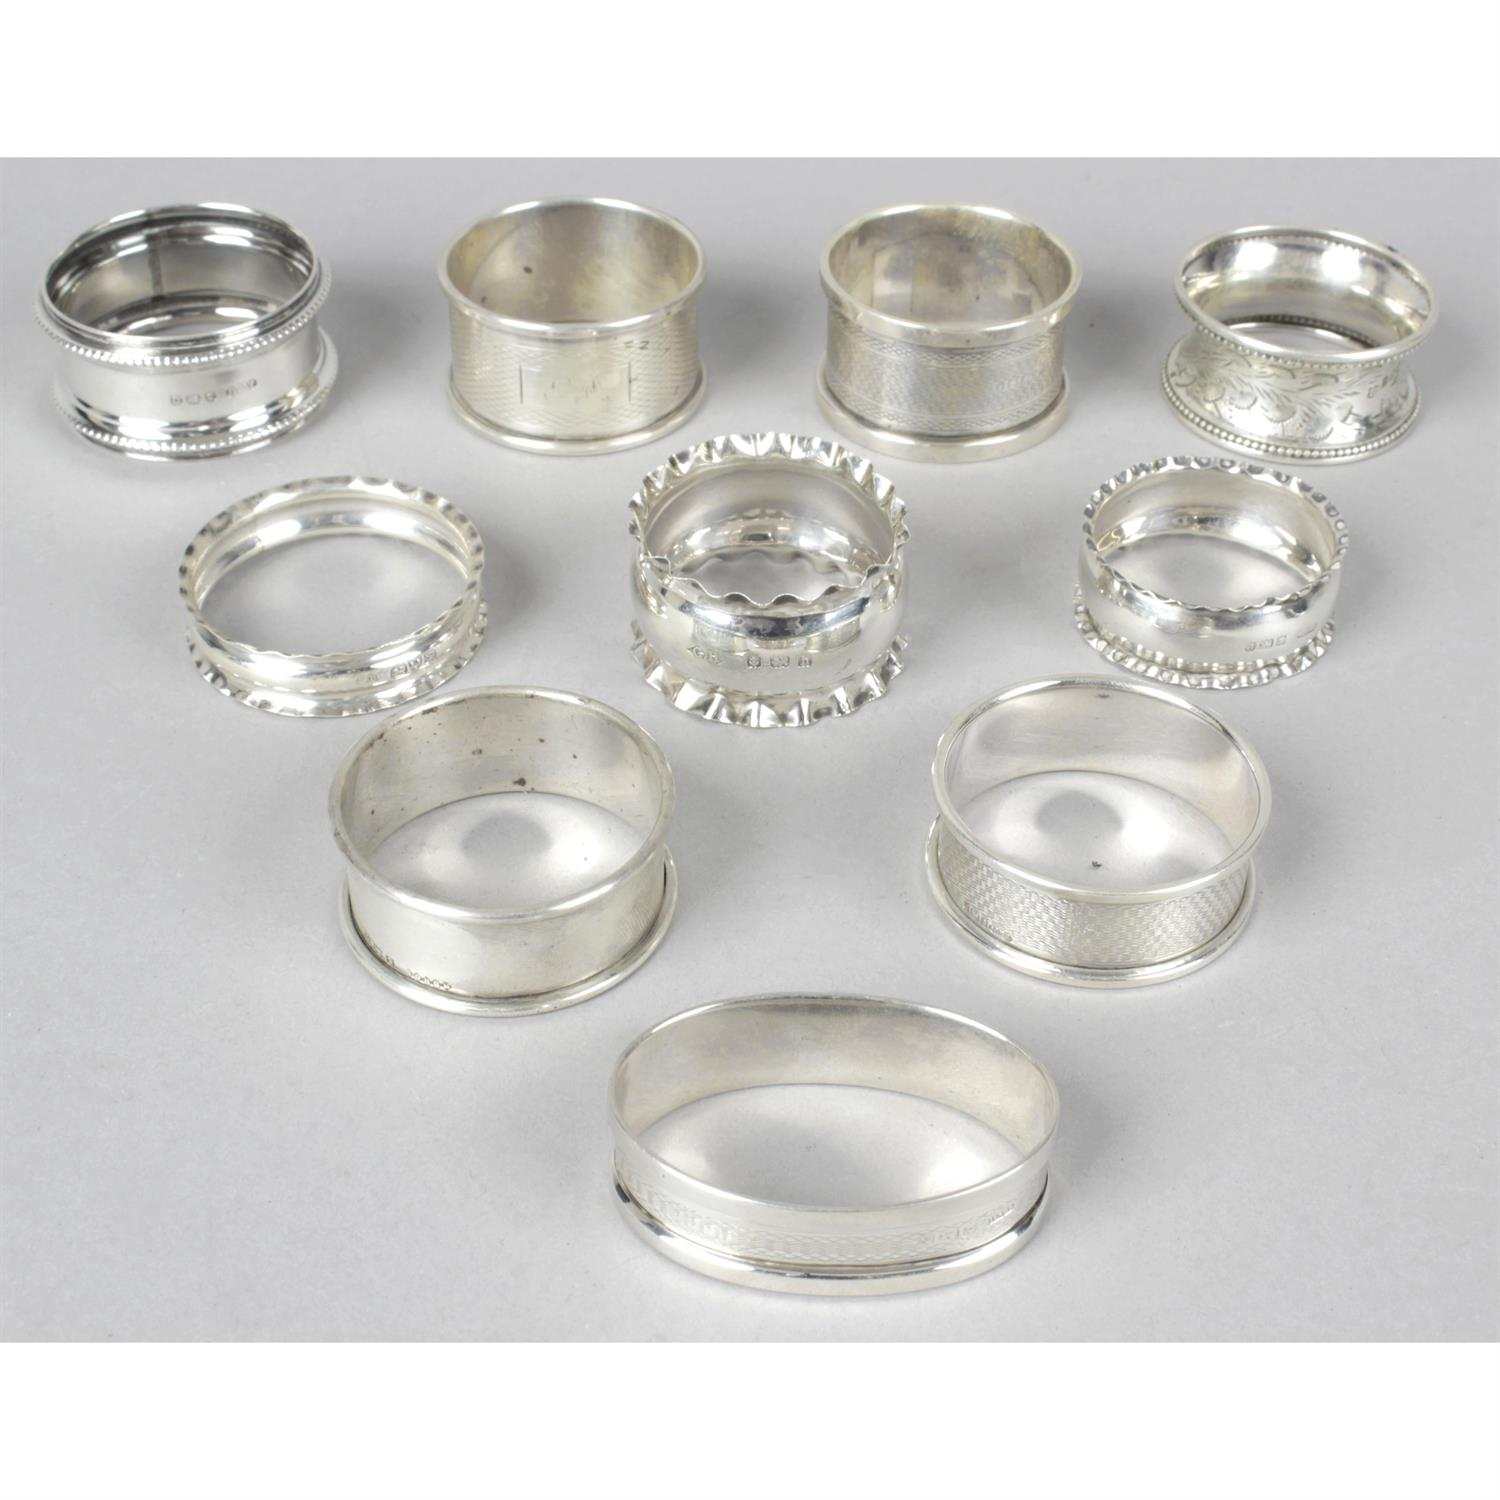 A collection of ten assorted mixed silver napkin rings.